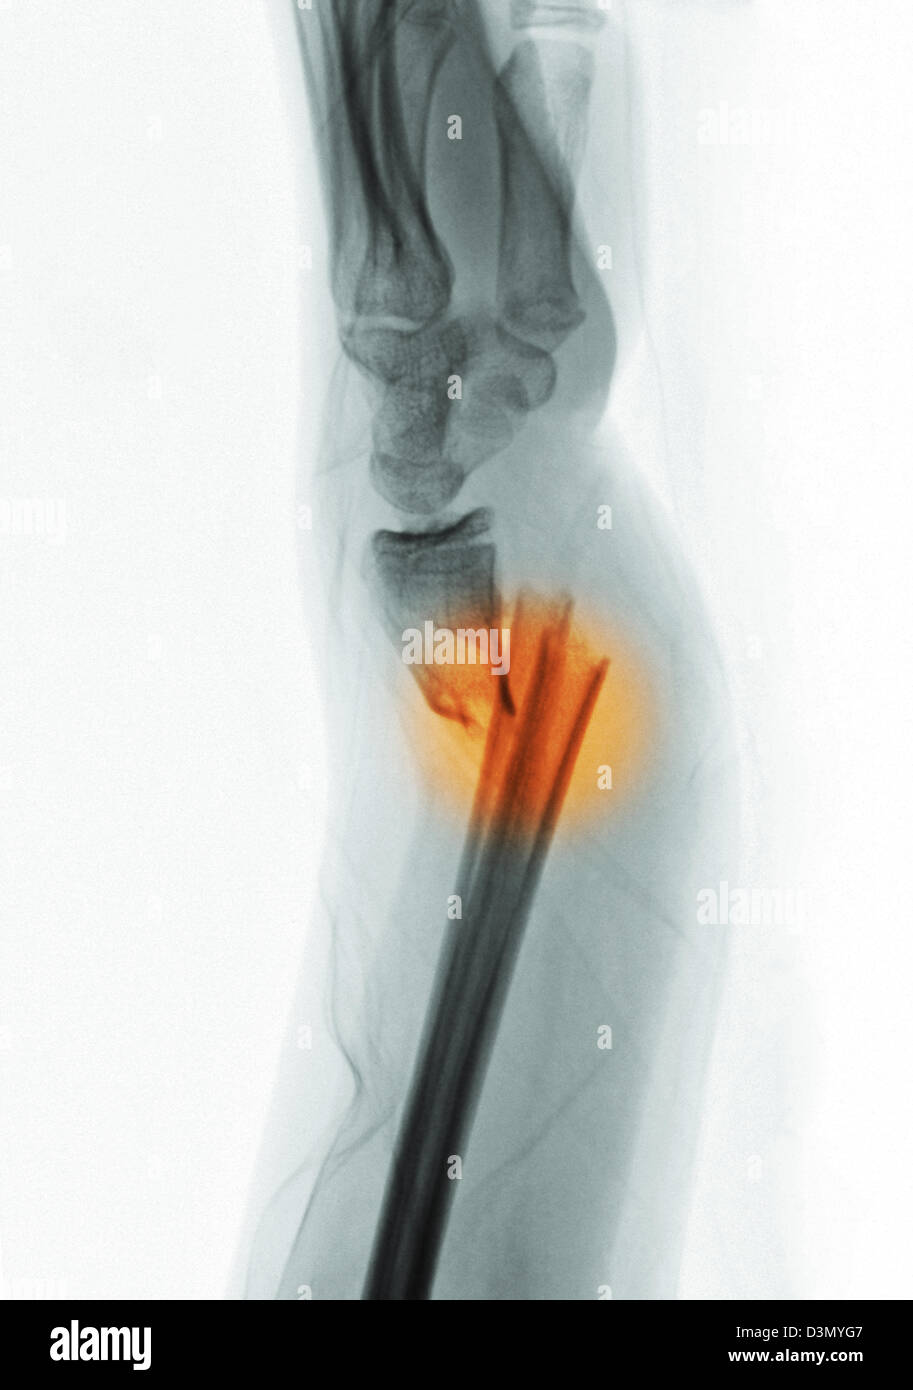 x-ray showing a distal radius and ulna fracture in a 12 year old ...